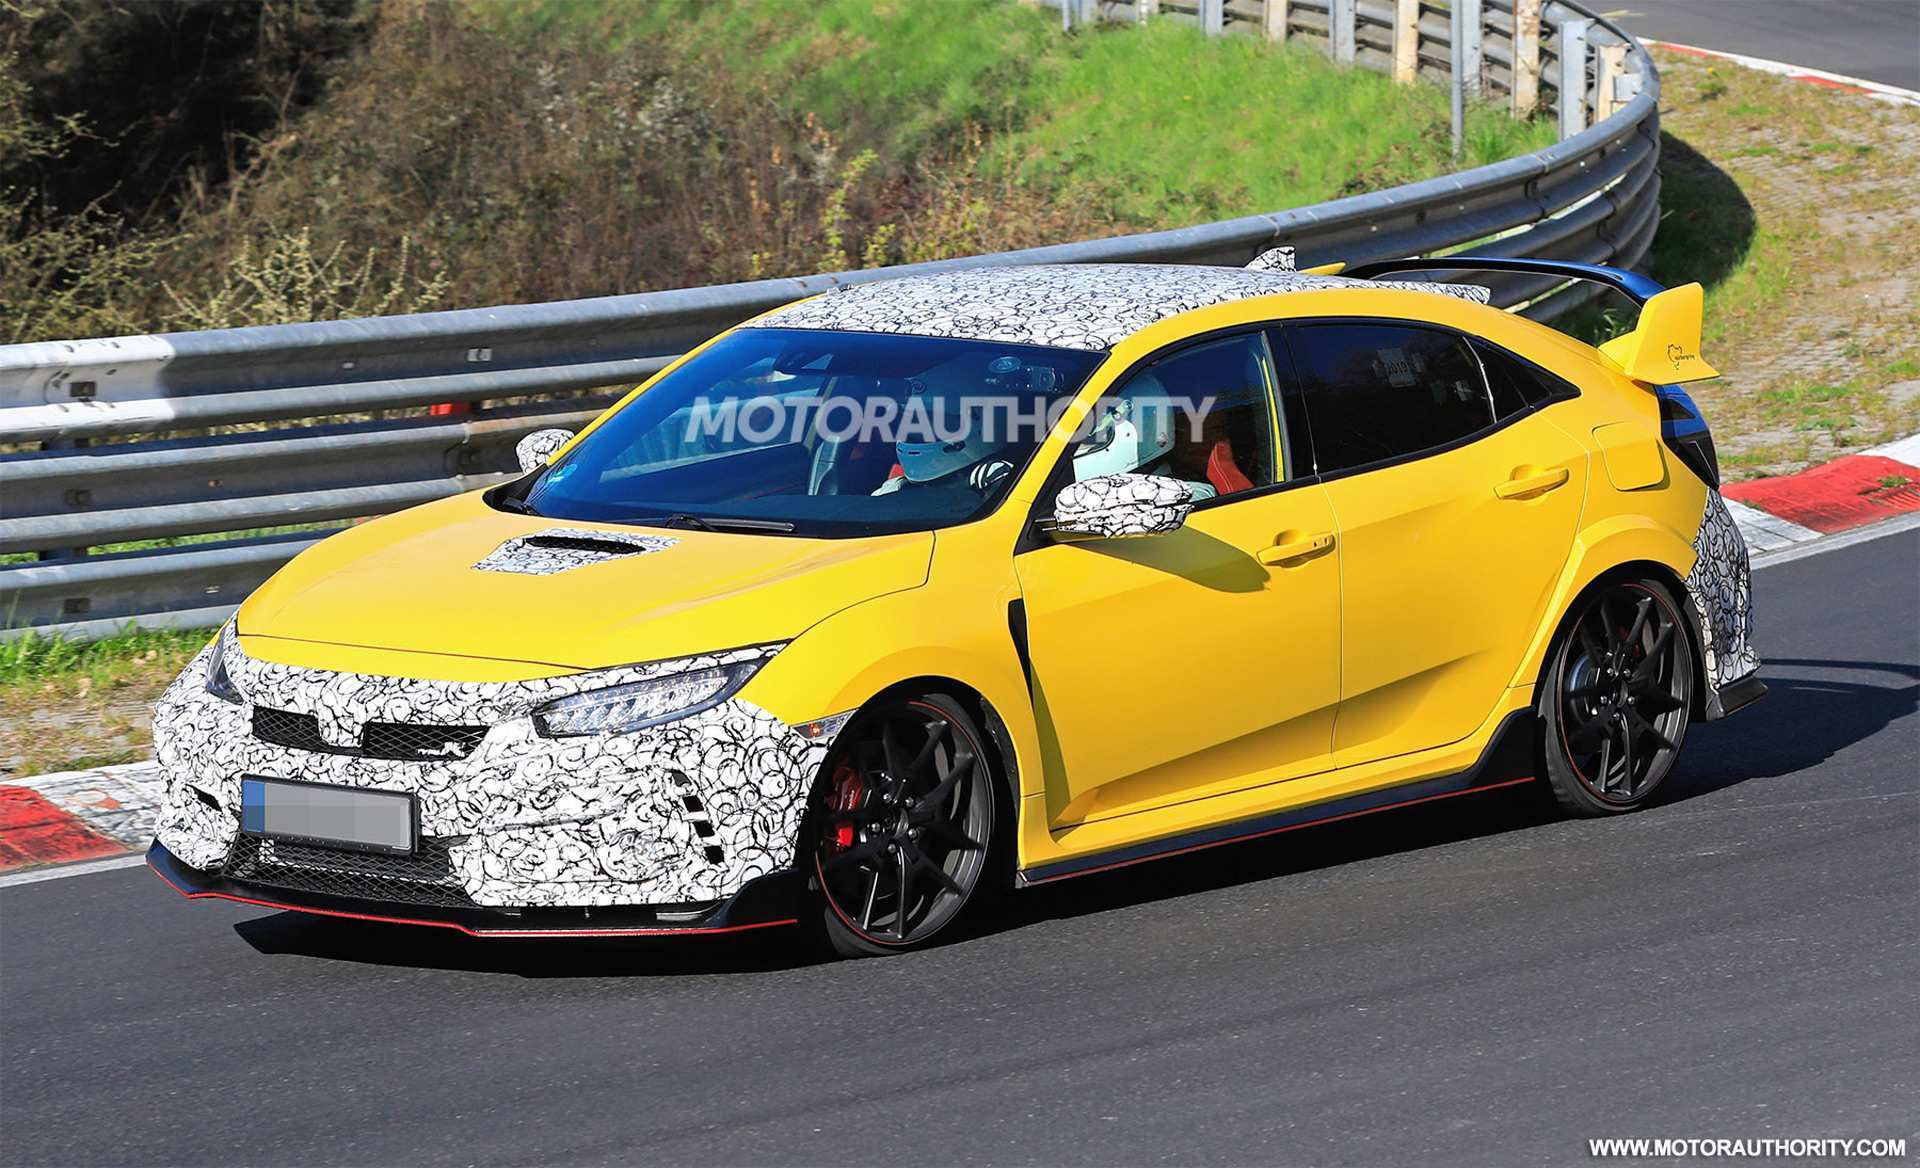 12 New 2020 Honda Civic Coupe Interior